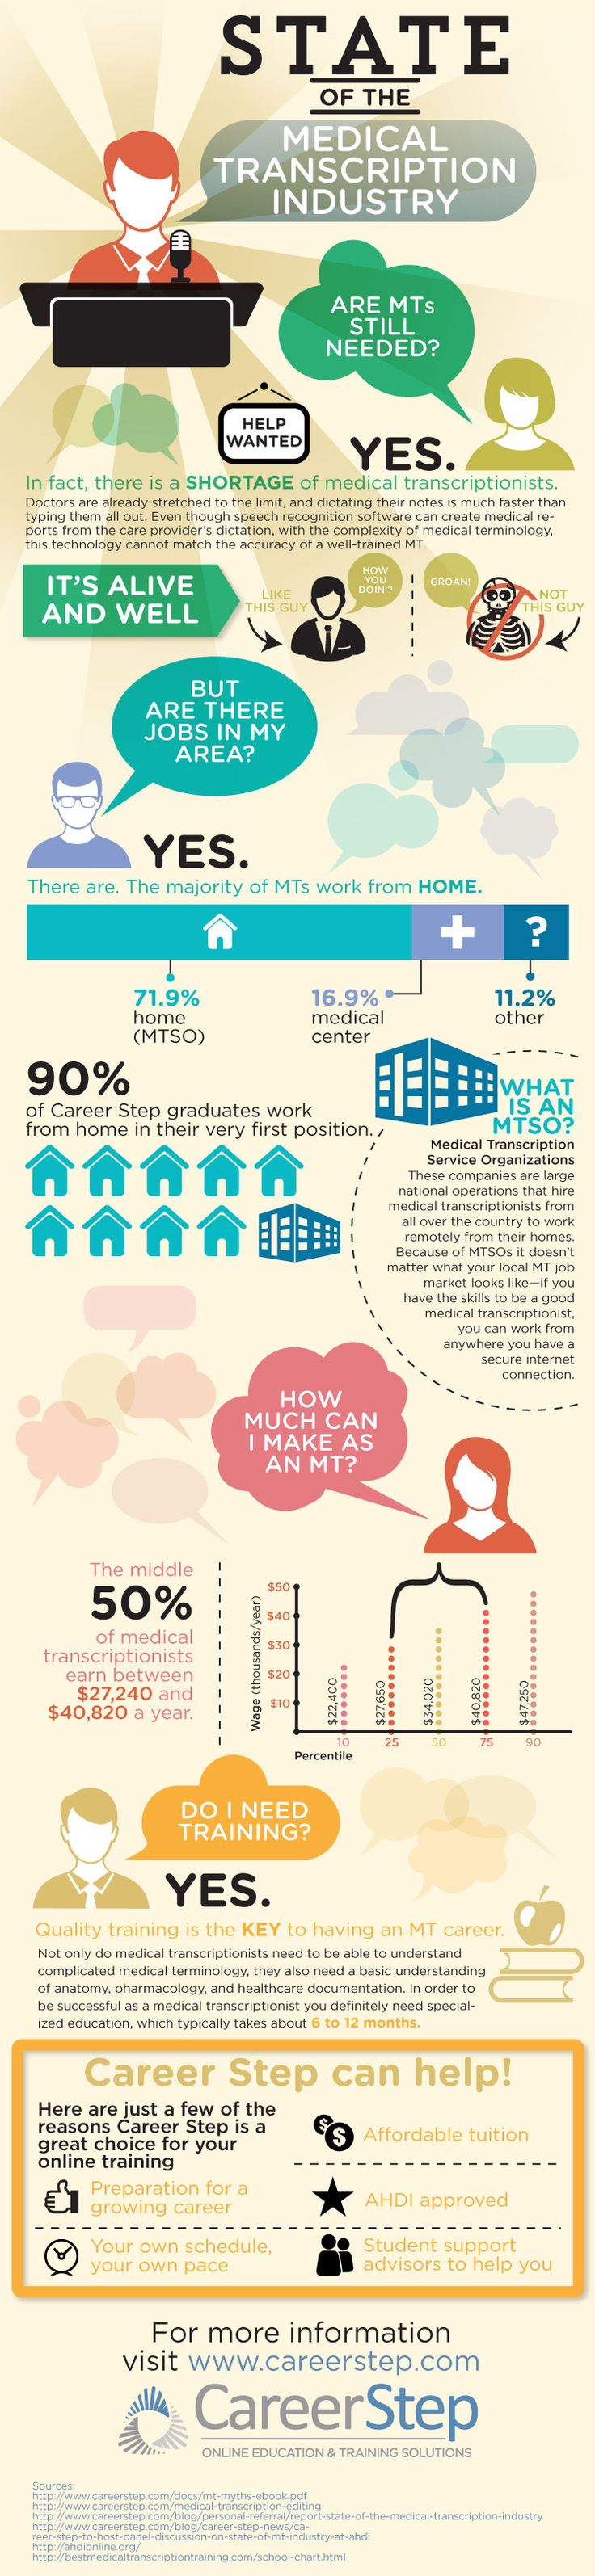 Infographic: Medical Transcription Industry Overview and Career Outlook